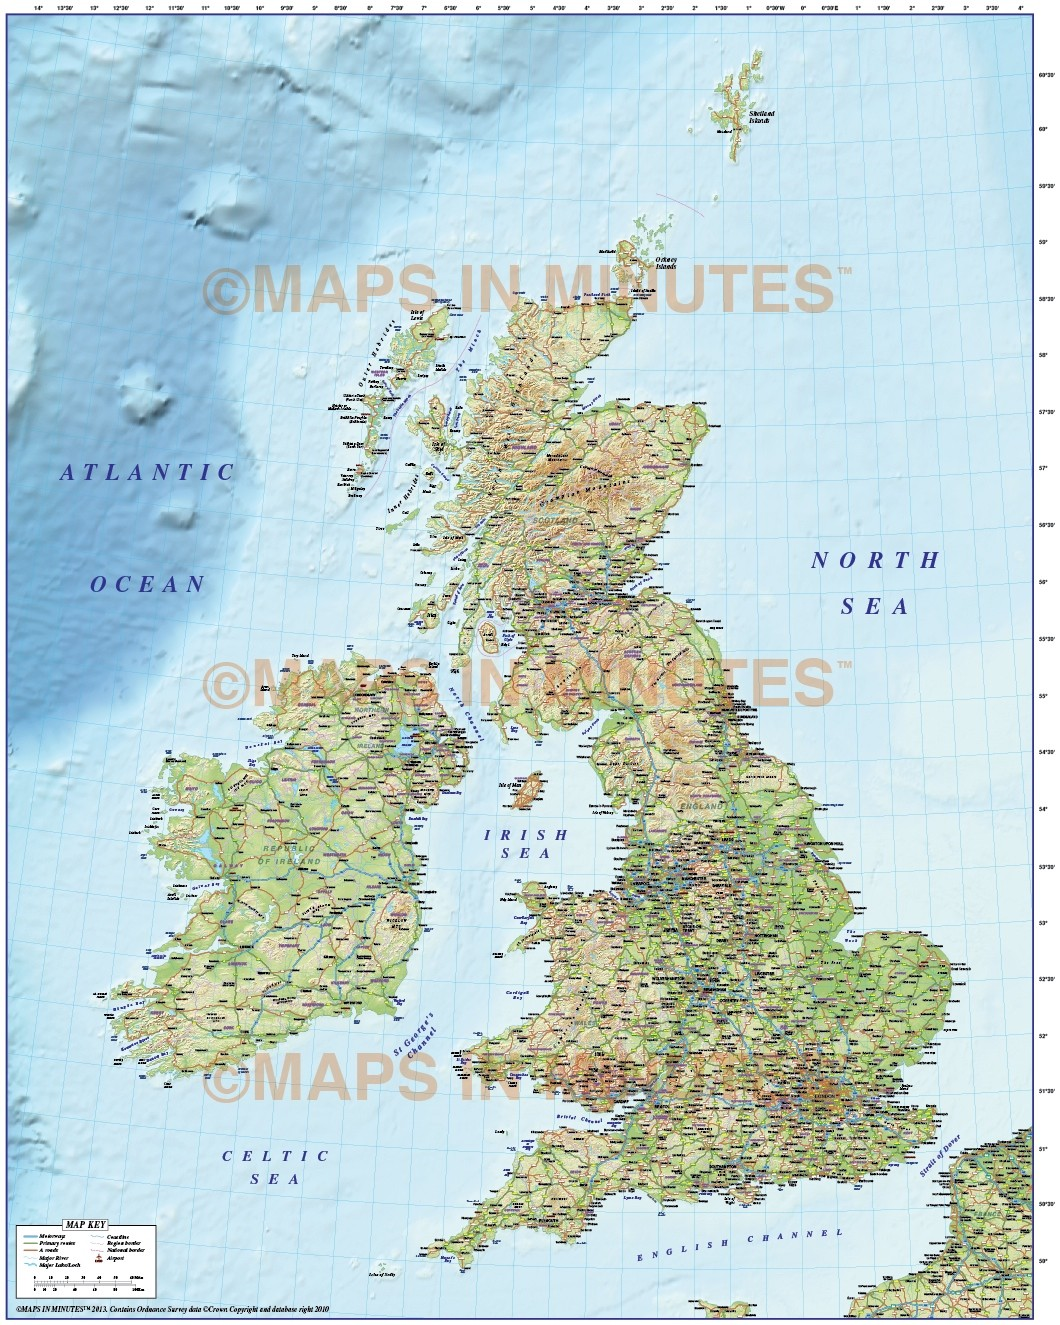 5M scale British Isles County Road map with 3 relief